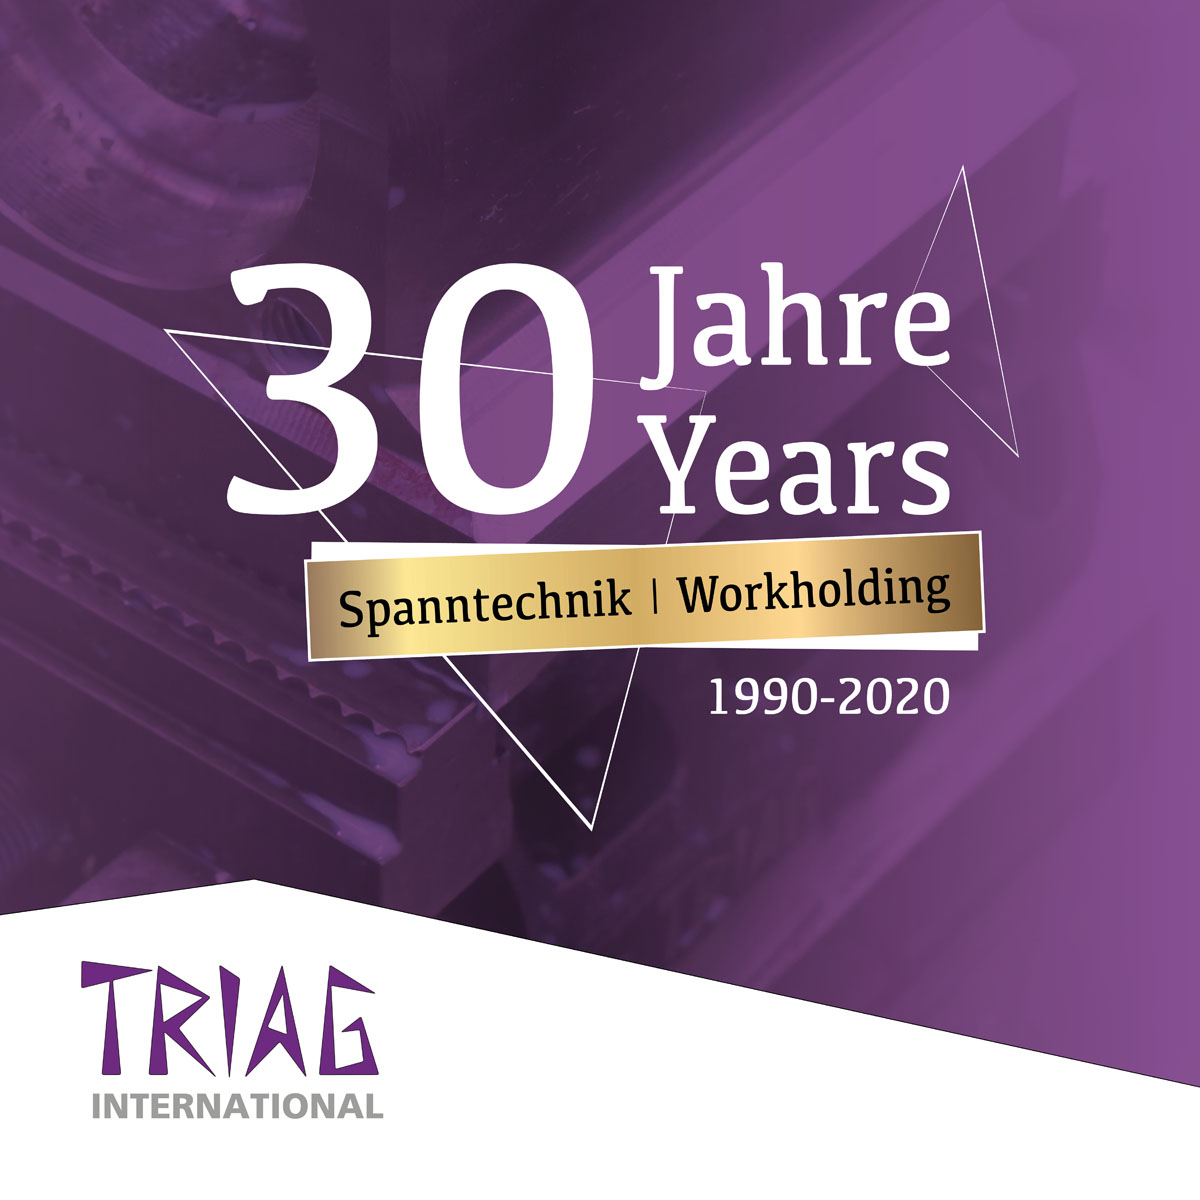 Numerous innovations in the 30-year success story of Triag International.